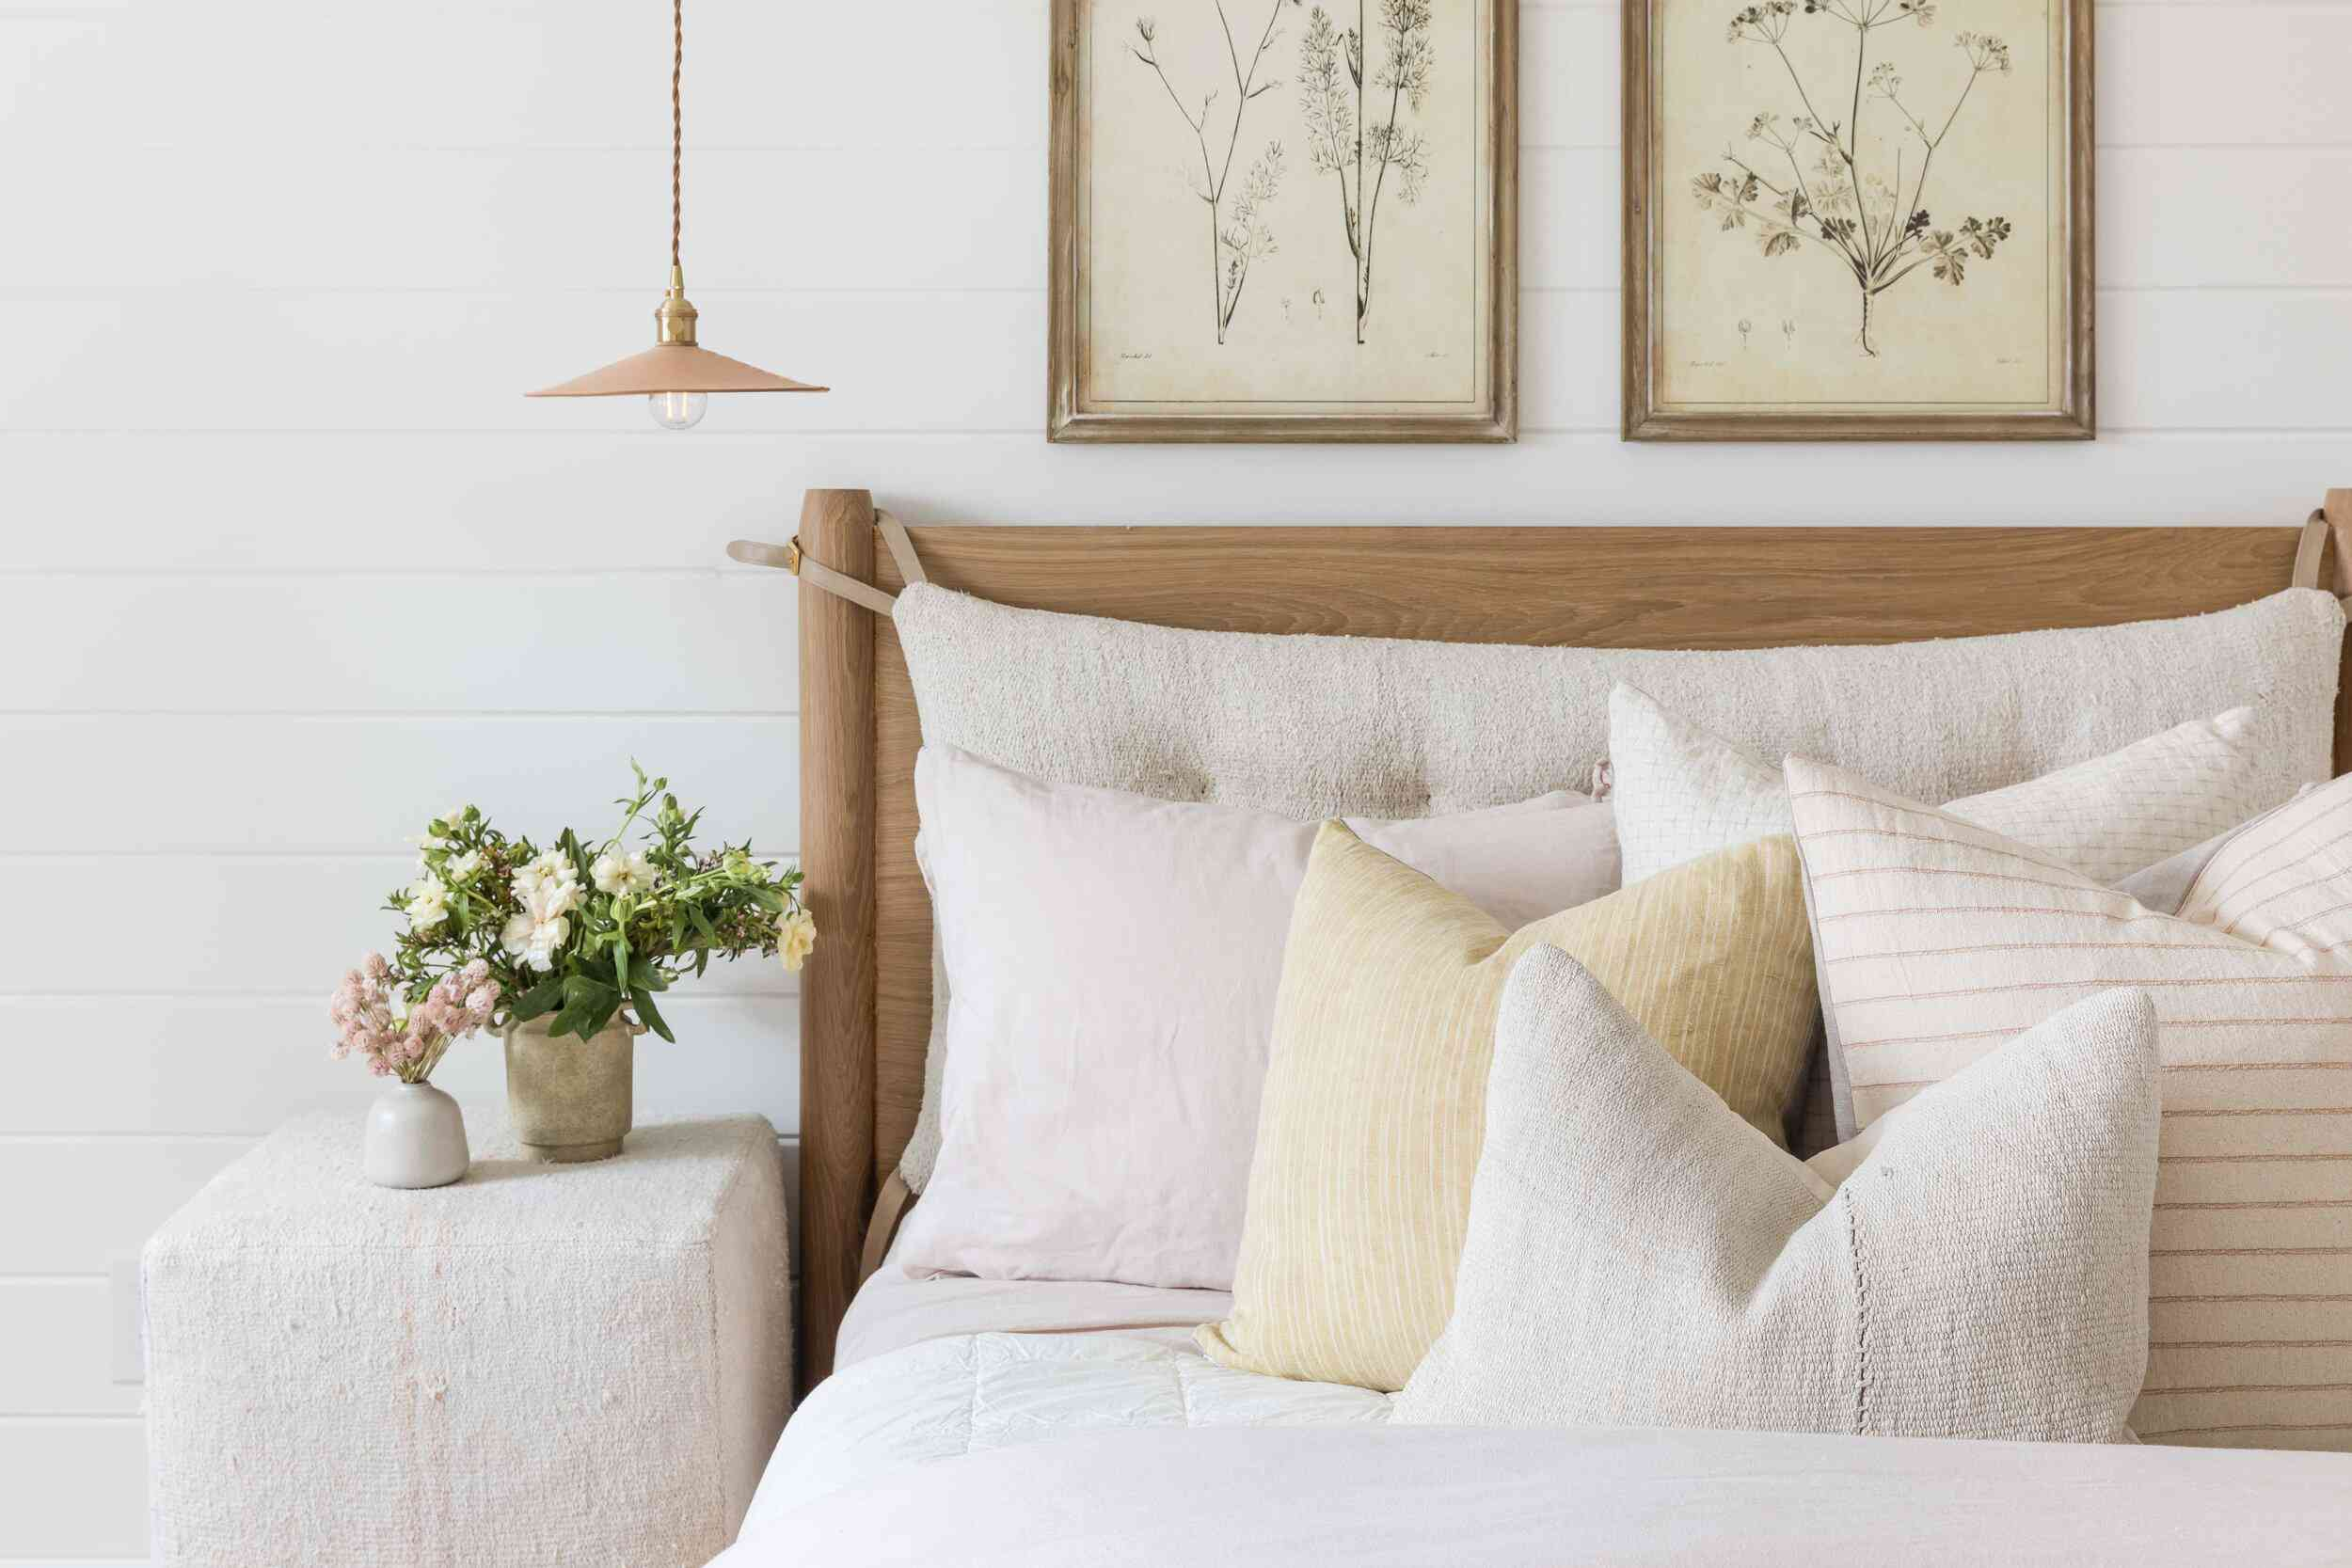 A mostly off-white bedroom with a washed-out lavender pillow